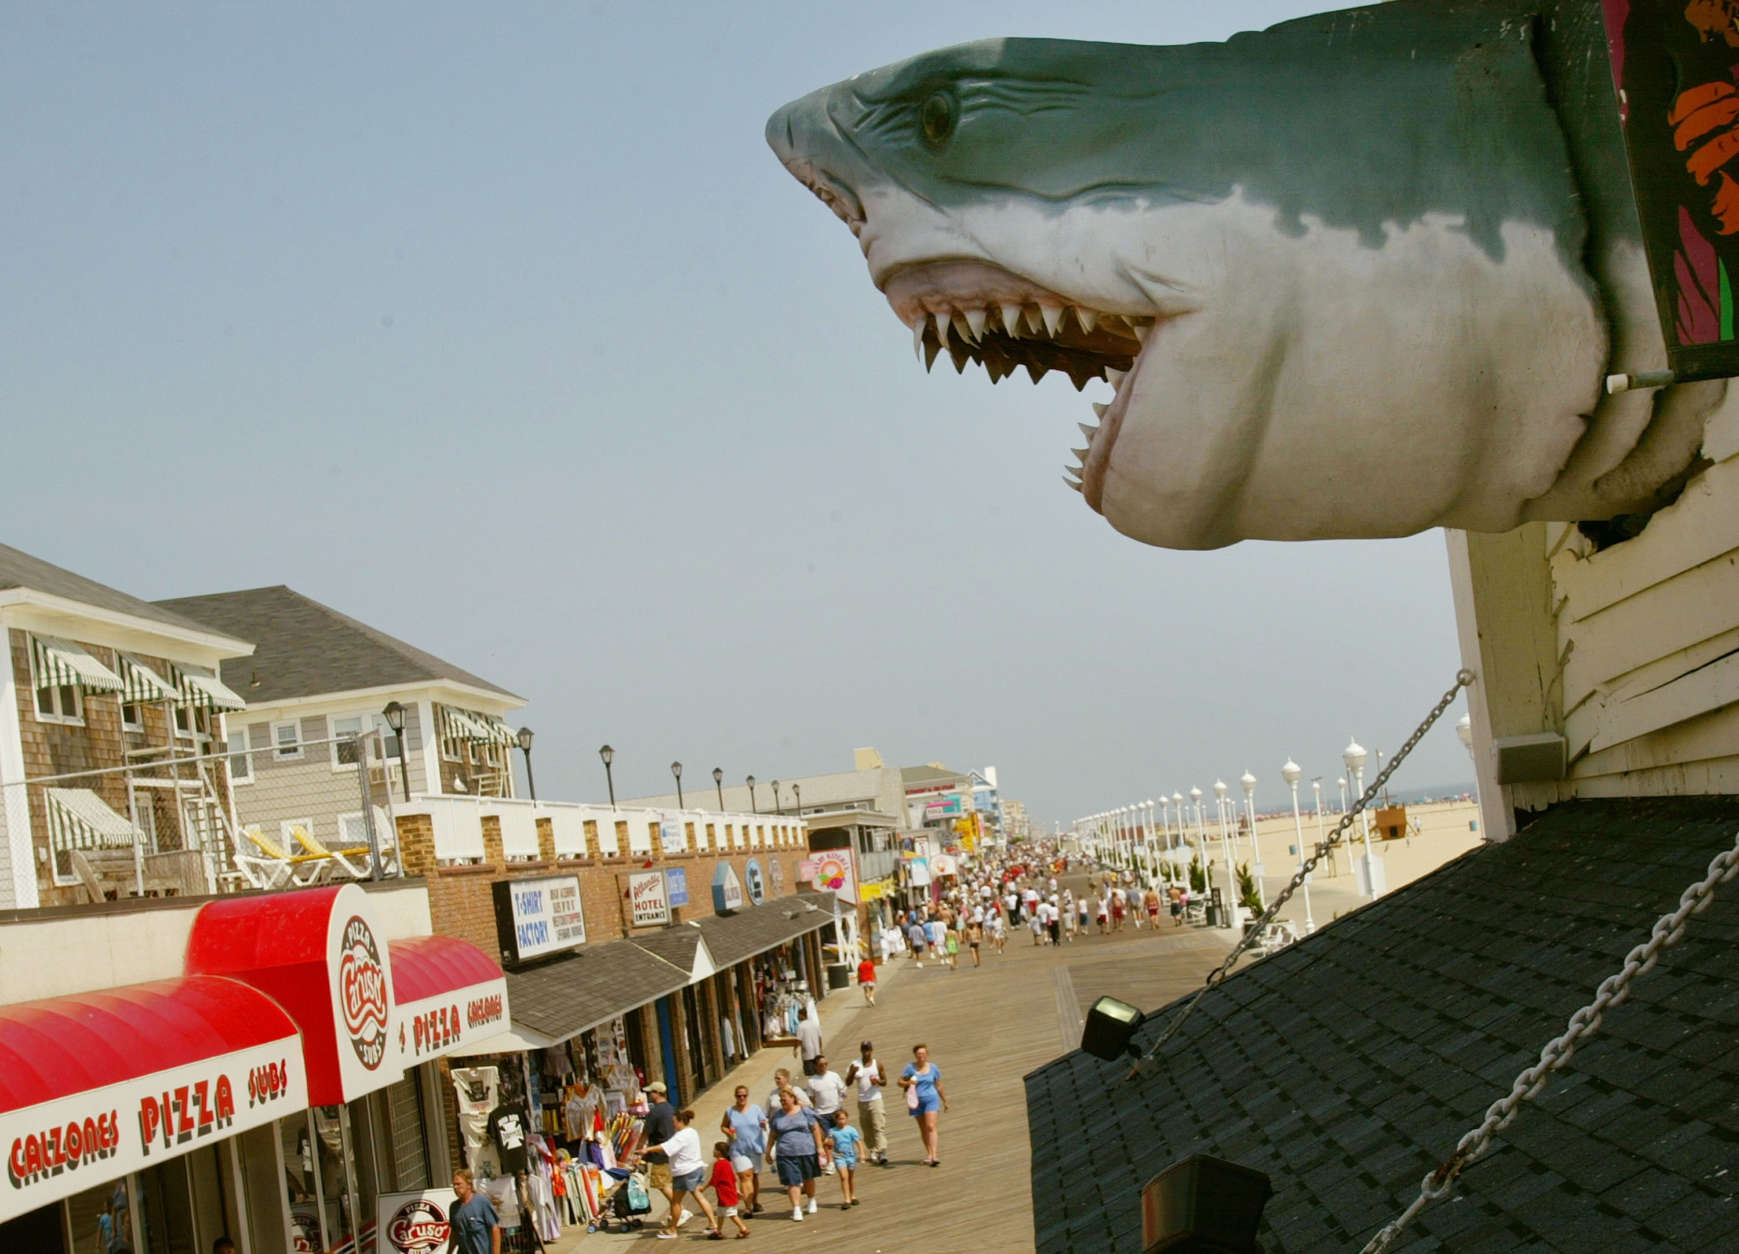 Ocean City is most associated with its wooden boardwalk, which is lined with shops, restaurants, hotels and a small amusement park. A handful of the boardwalk-based businesses have been operating for 100-plus years. (Photo by Mark Wilson/Getty Images)